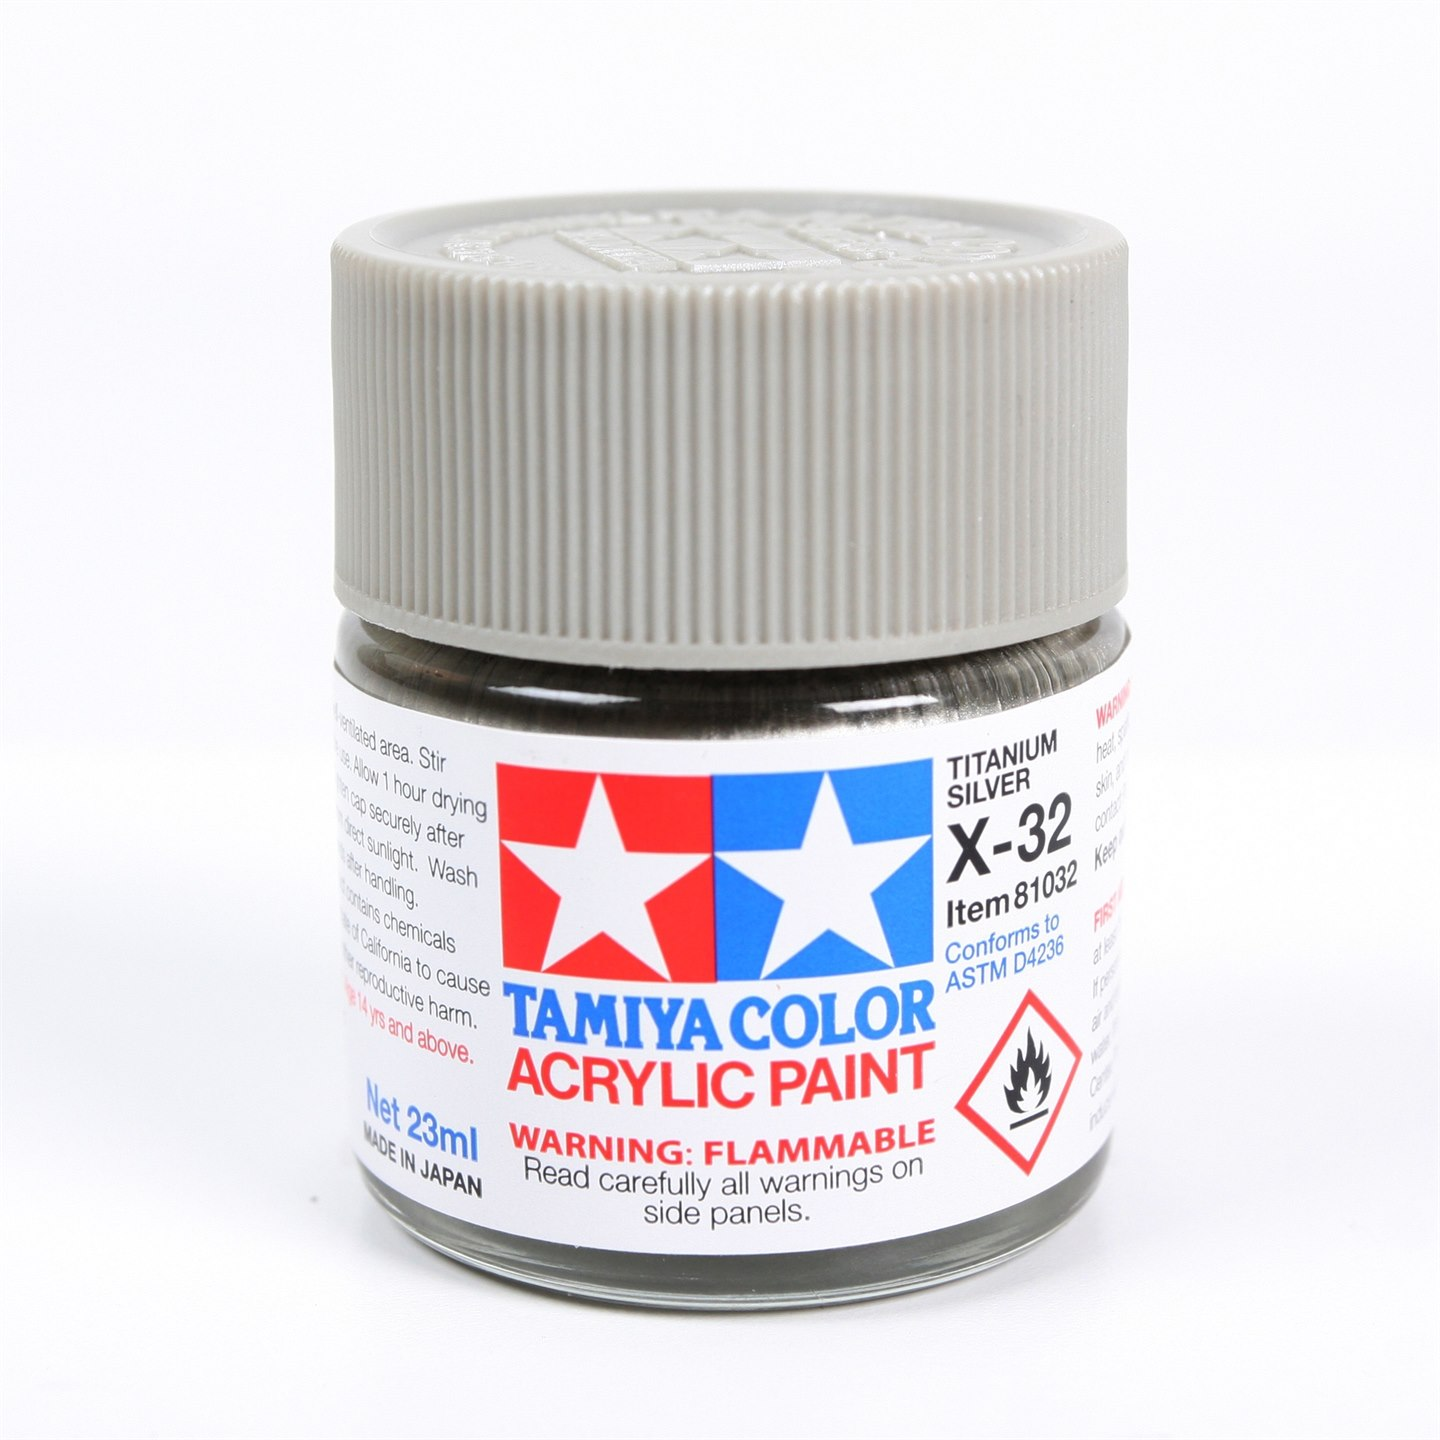 Tamiya Color Acrylic Paint X-32 (Titanium Silver) (23ml)